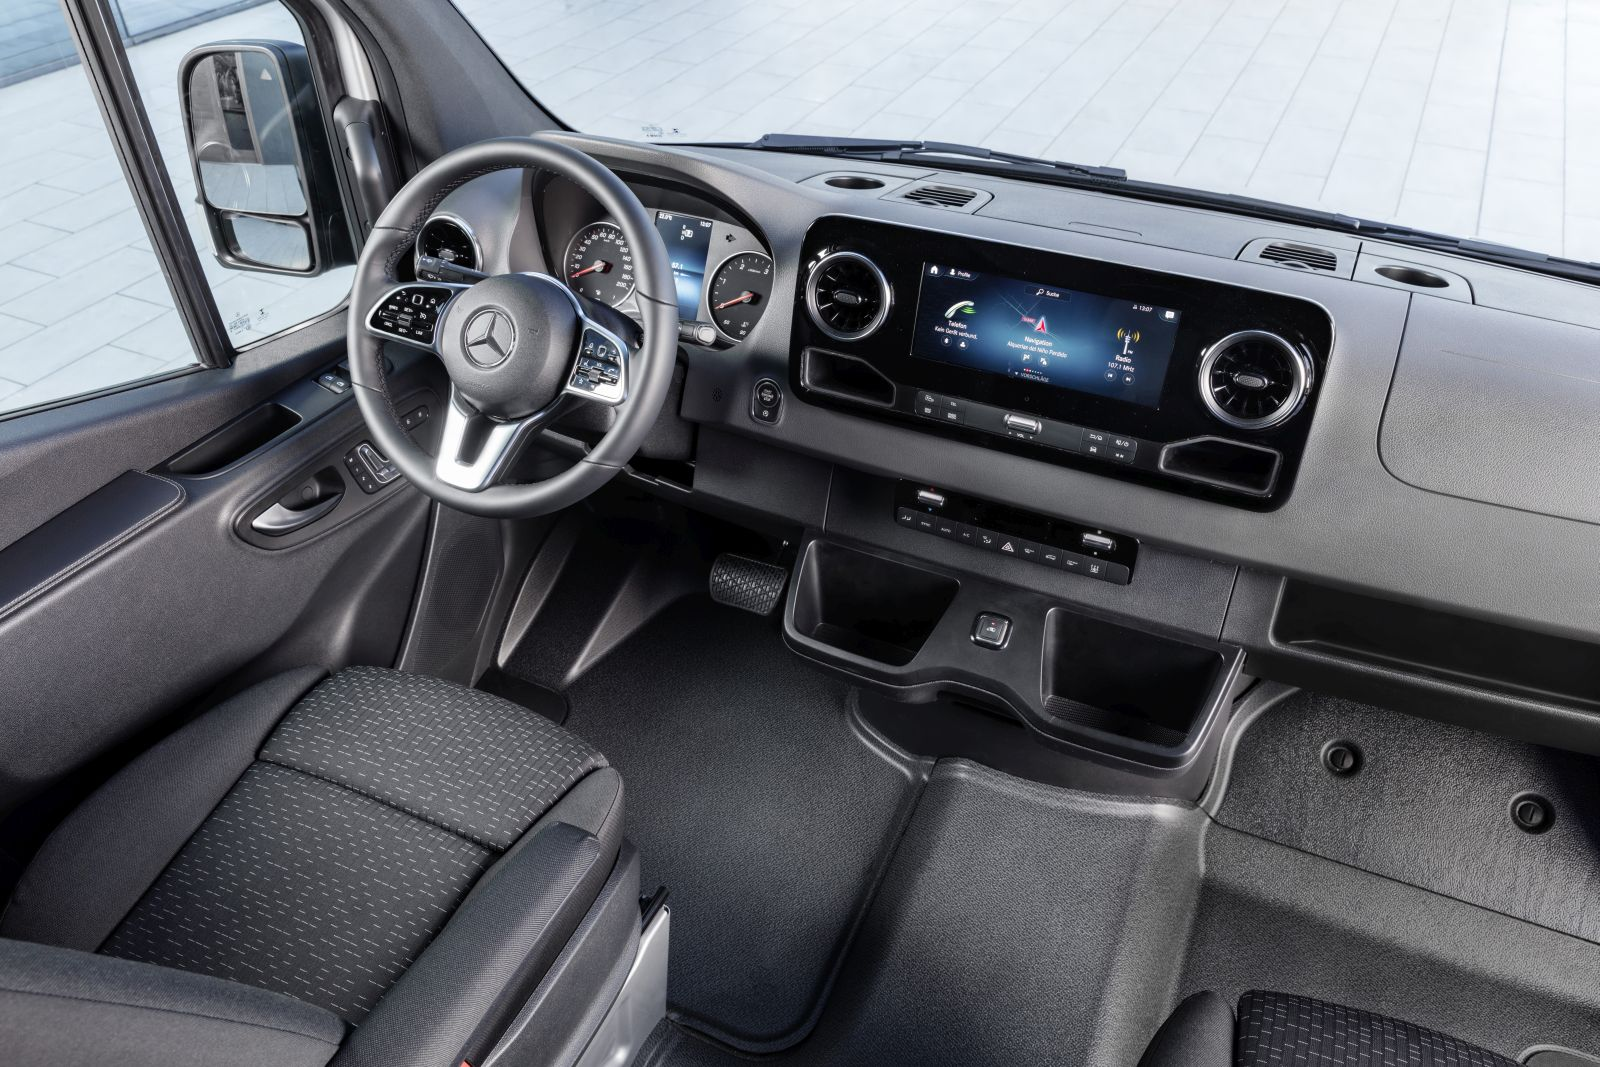 Mercedes-Benz Sprinter (2018) interieur